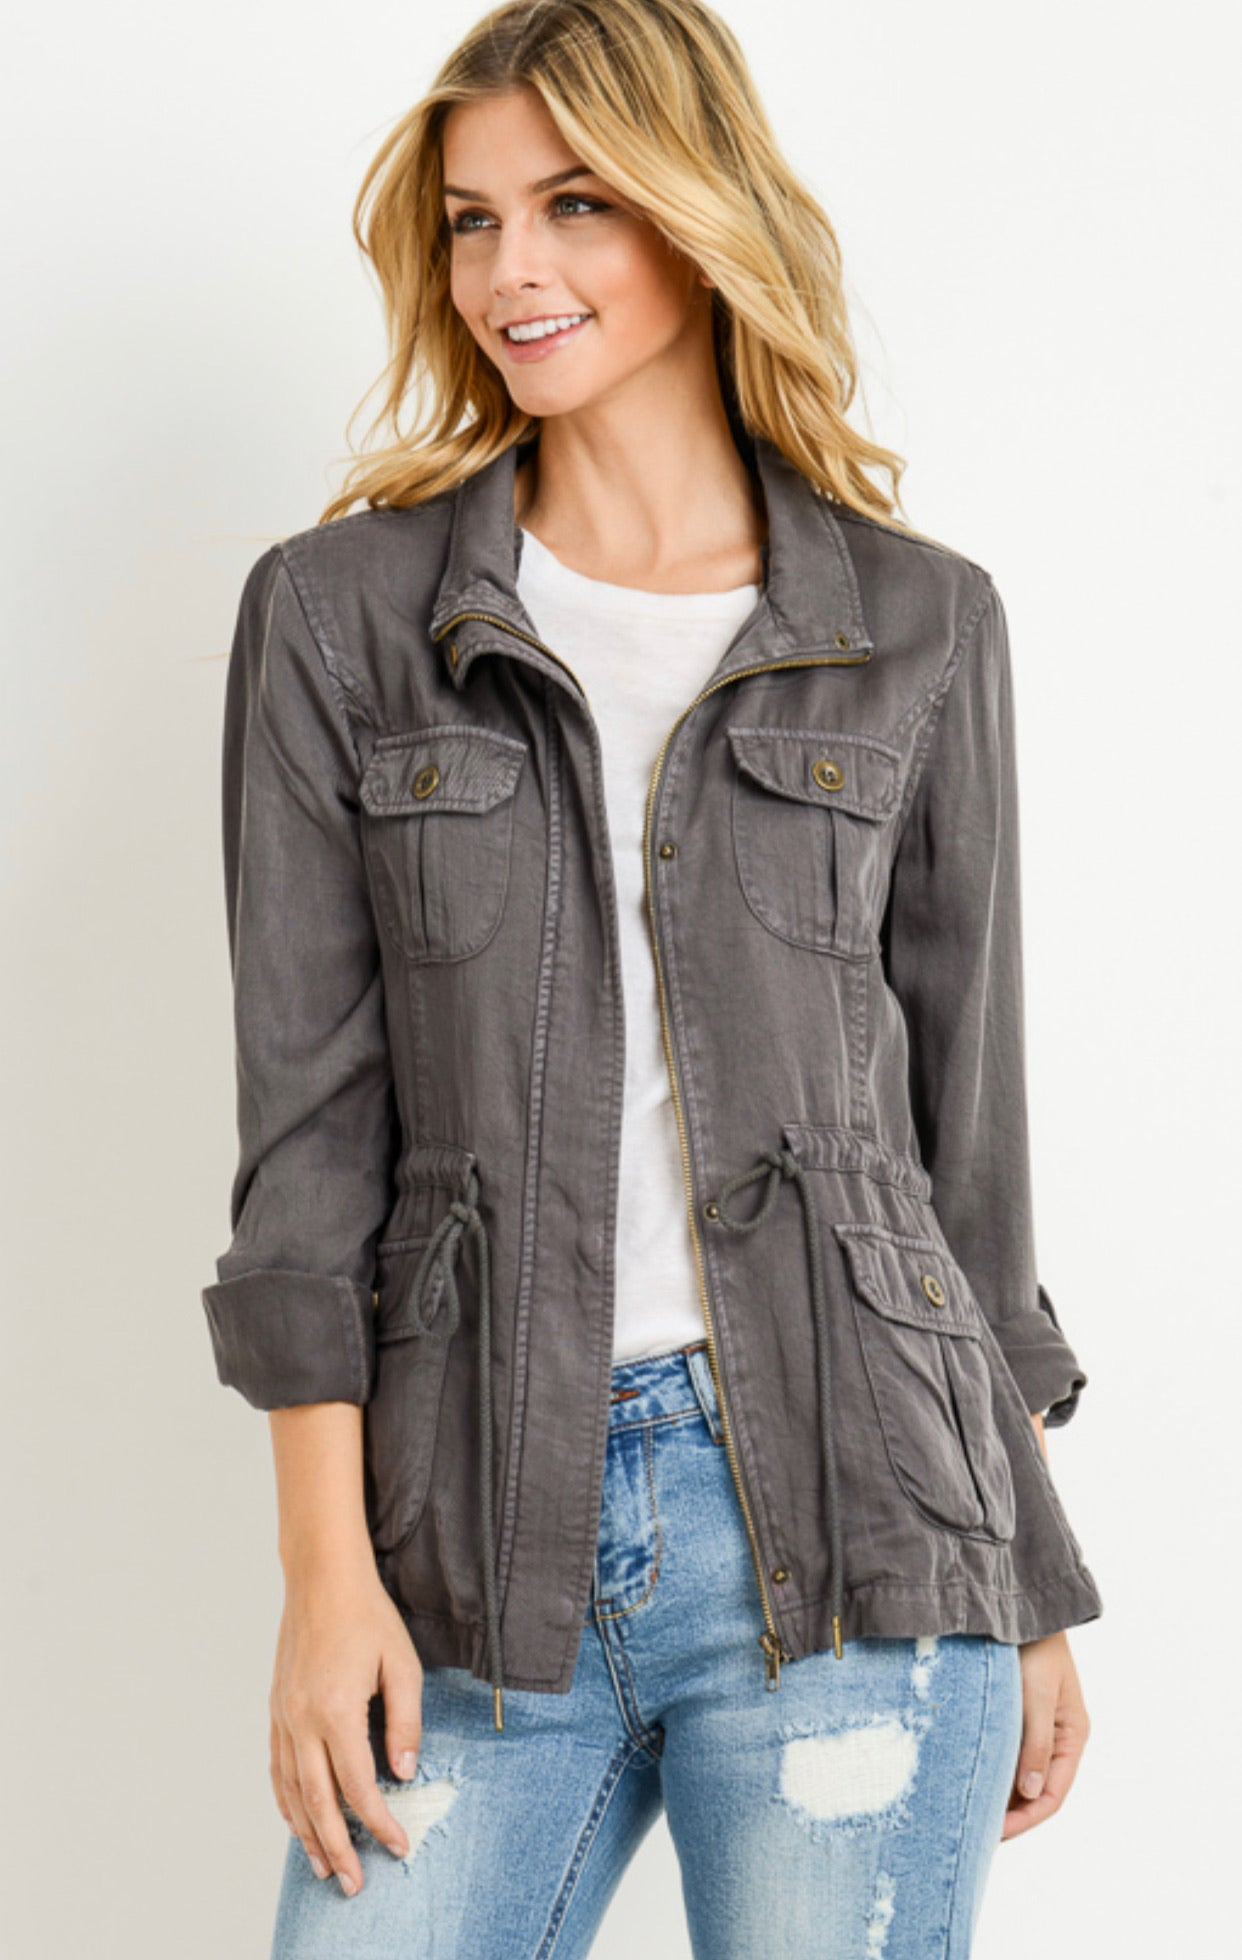 Cargo Jackets ** Two Colors, S-3X